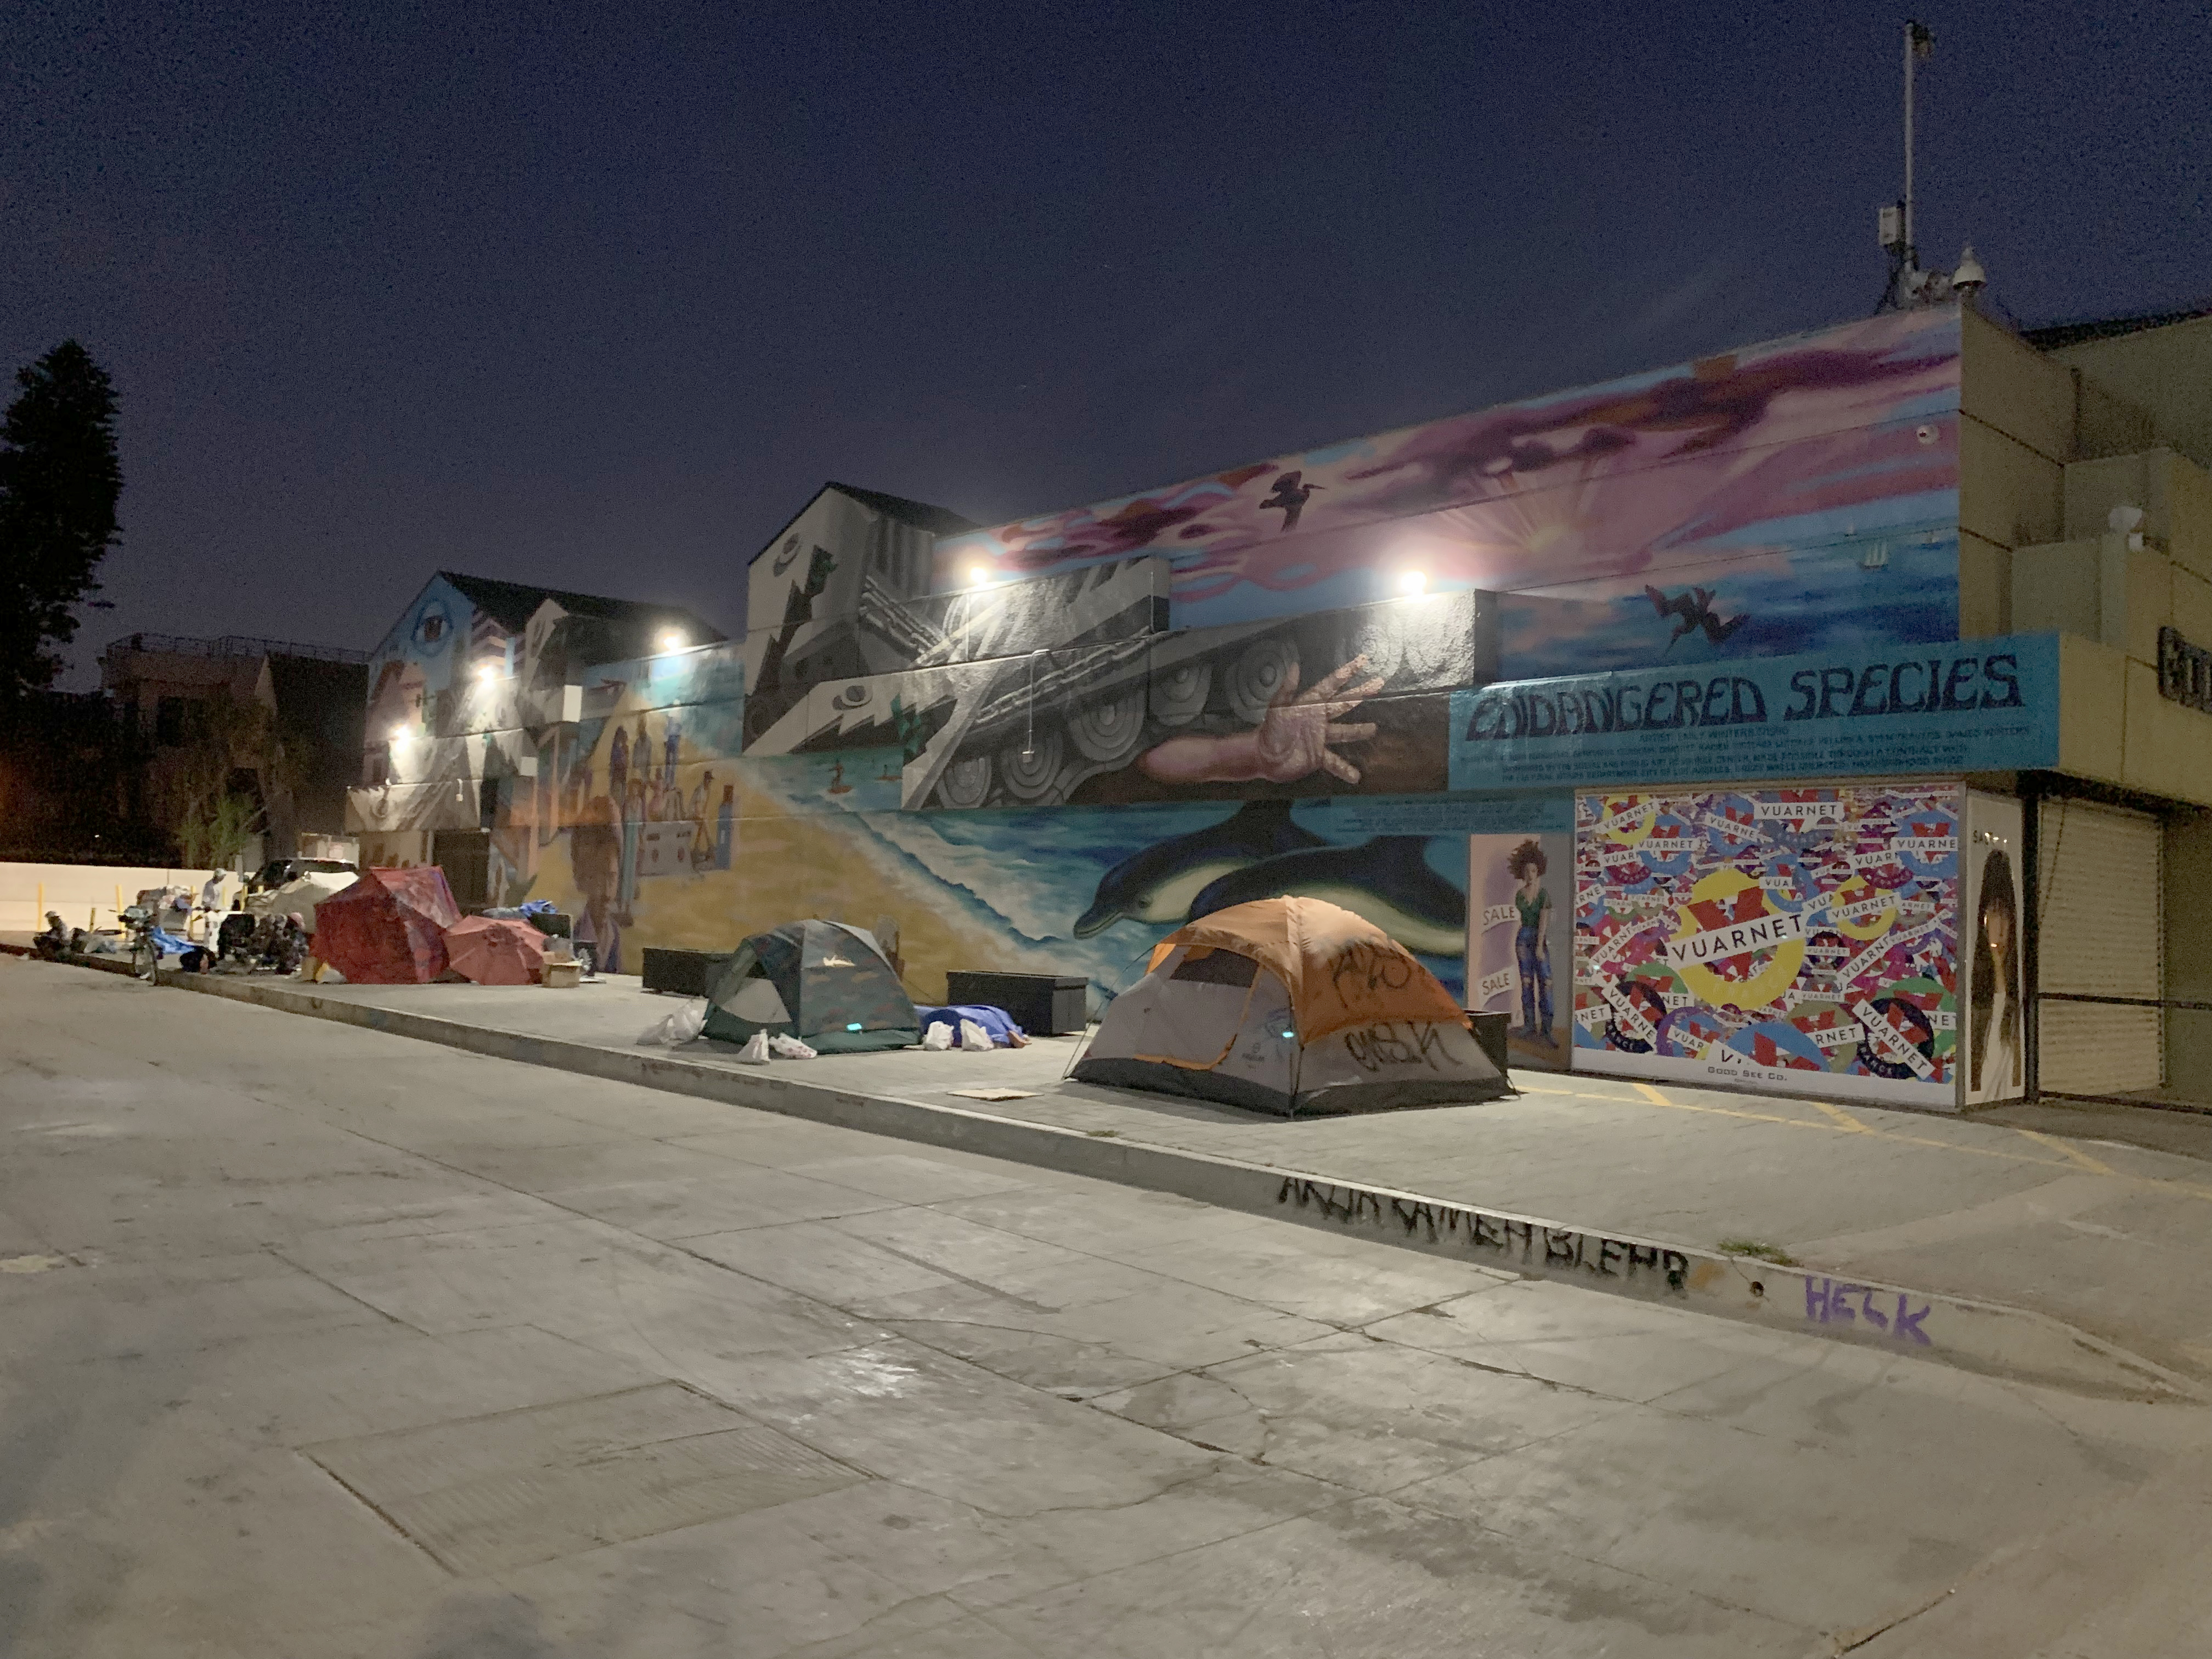 Homeless tents on a sidewalk under a colorful mural at night.